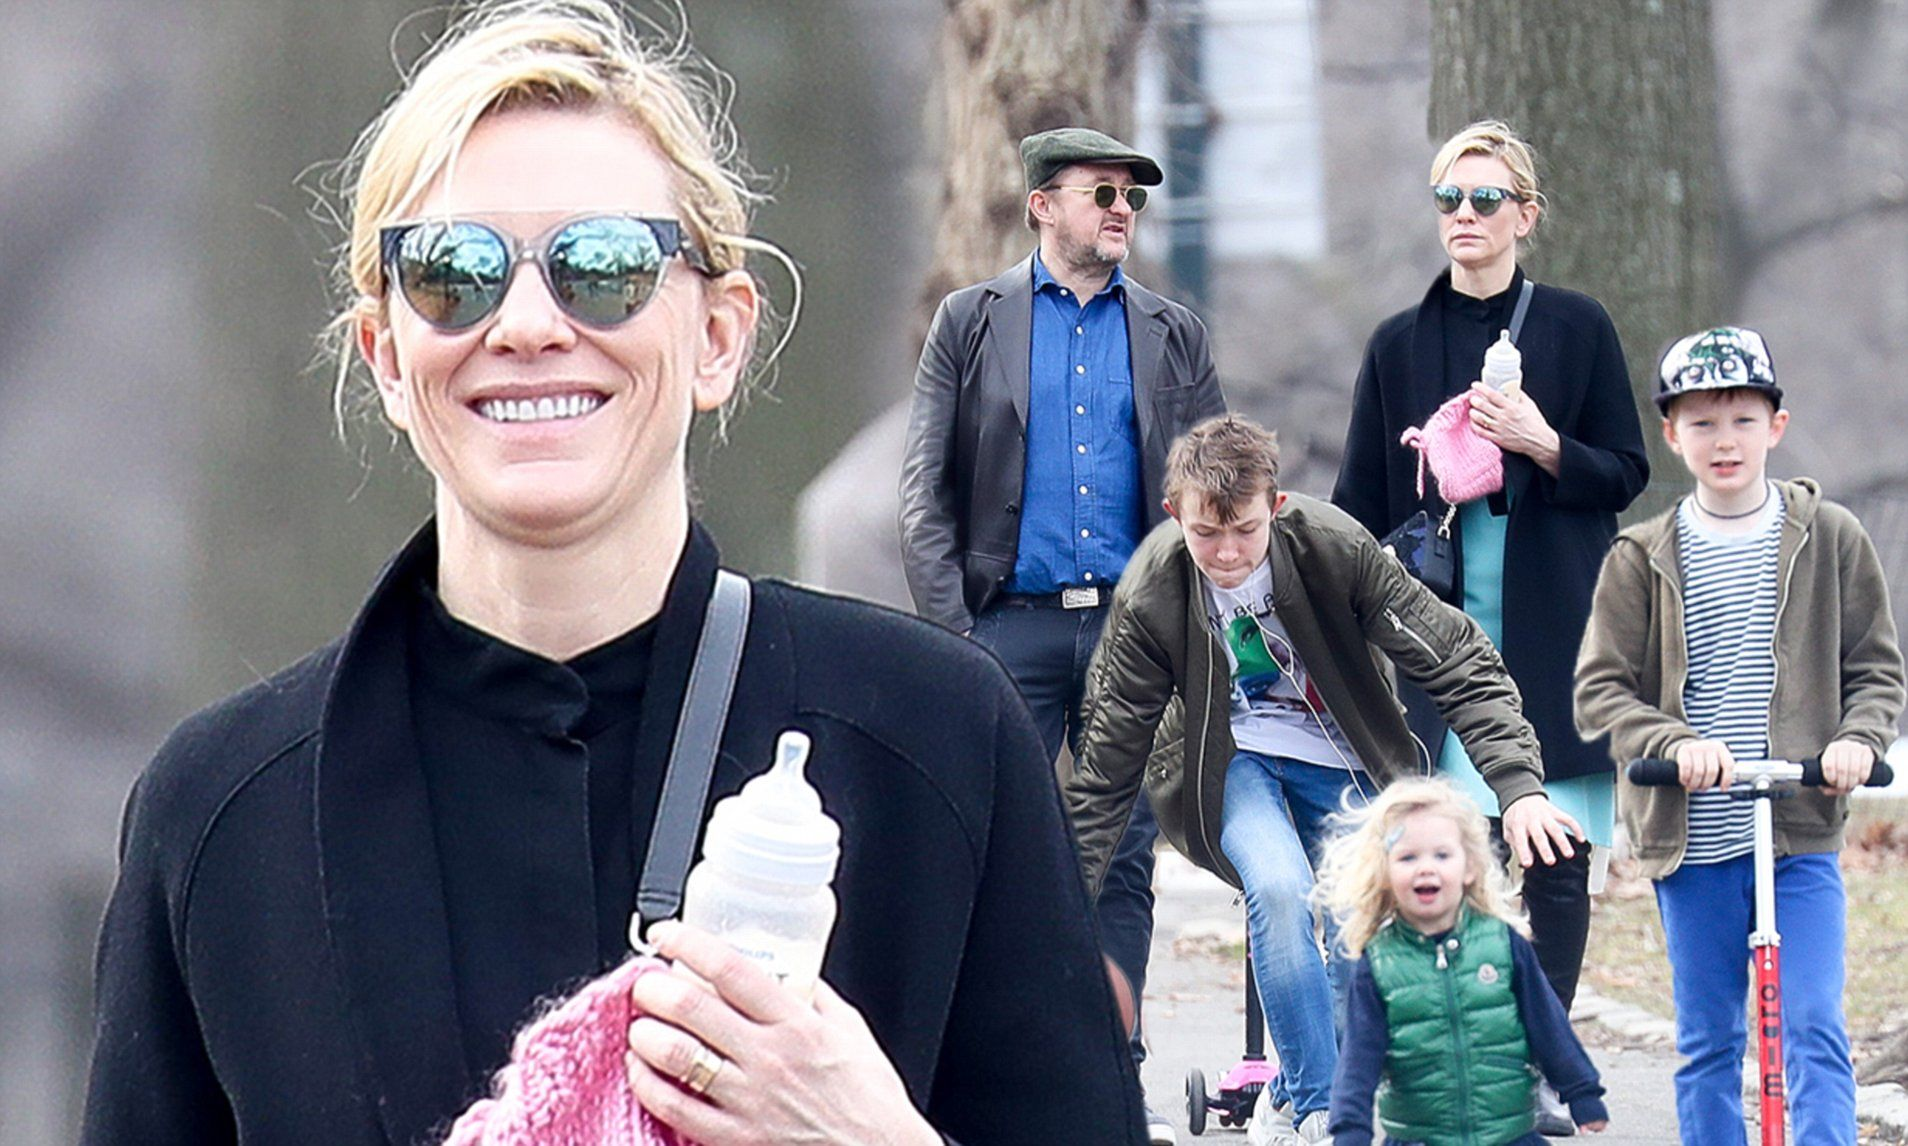 Cate Blanchett enjoys a day out with family in New York